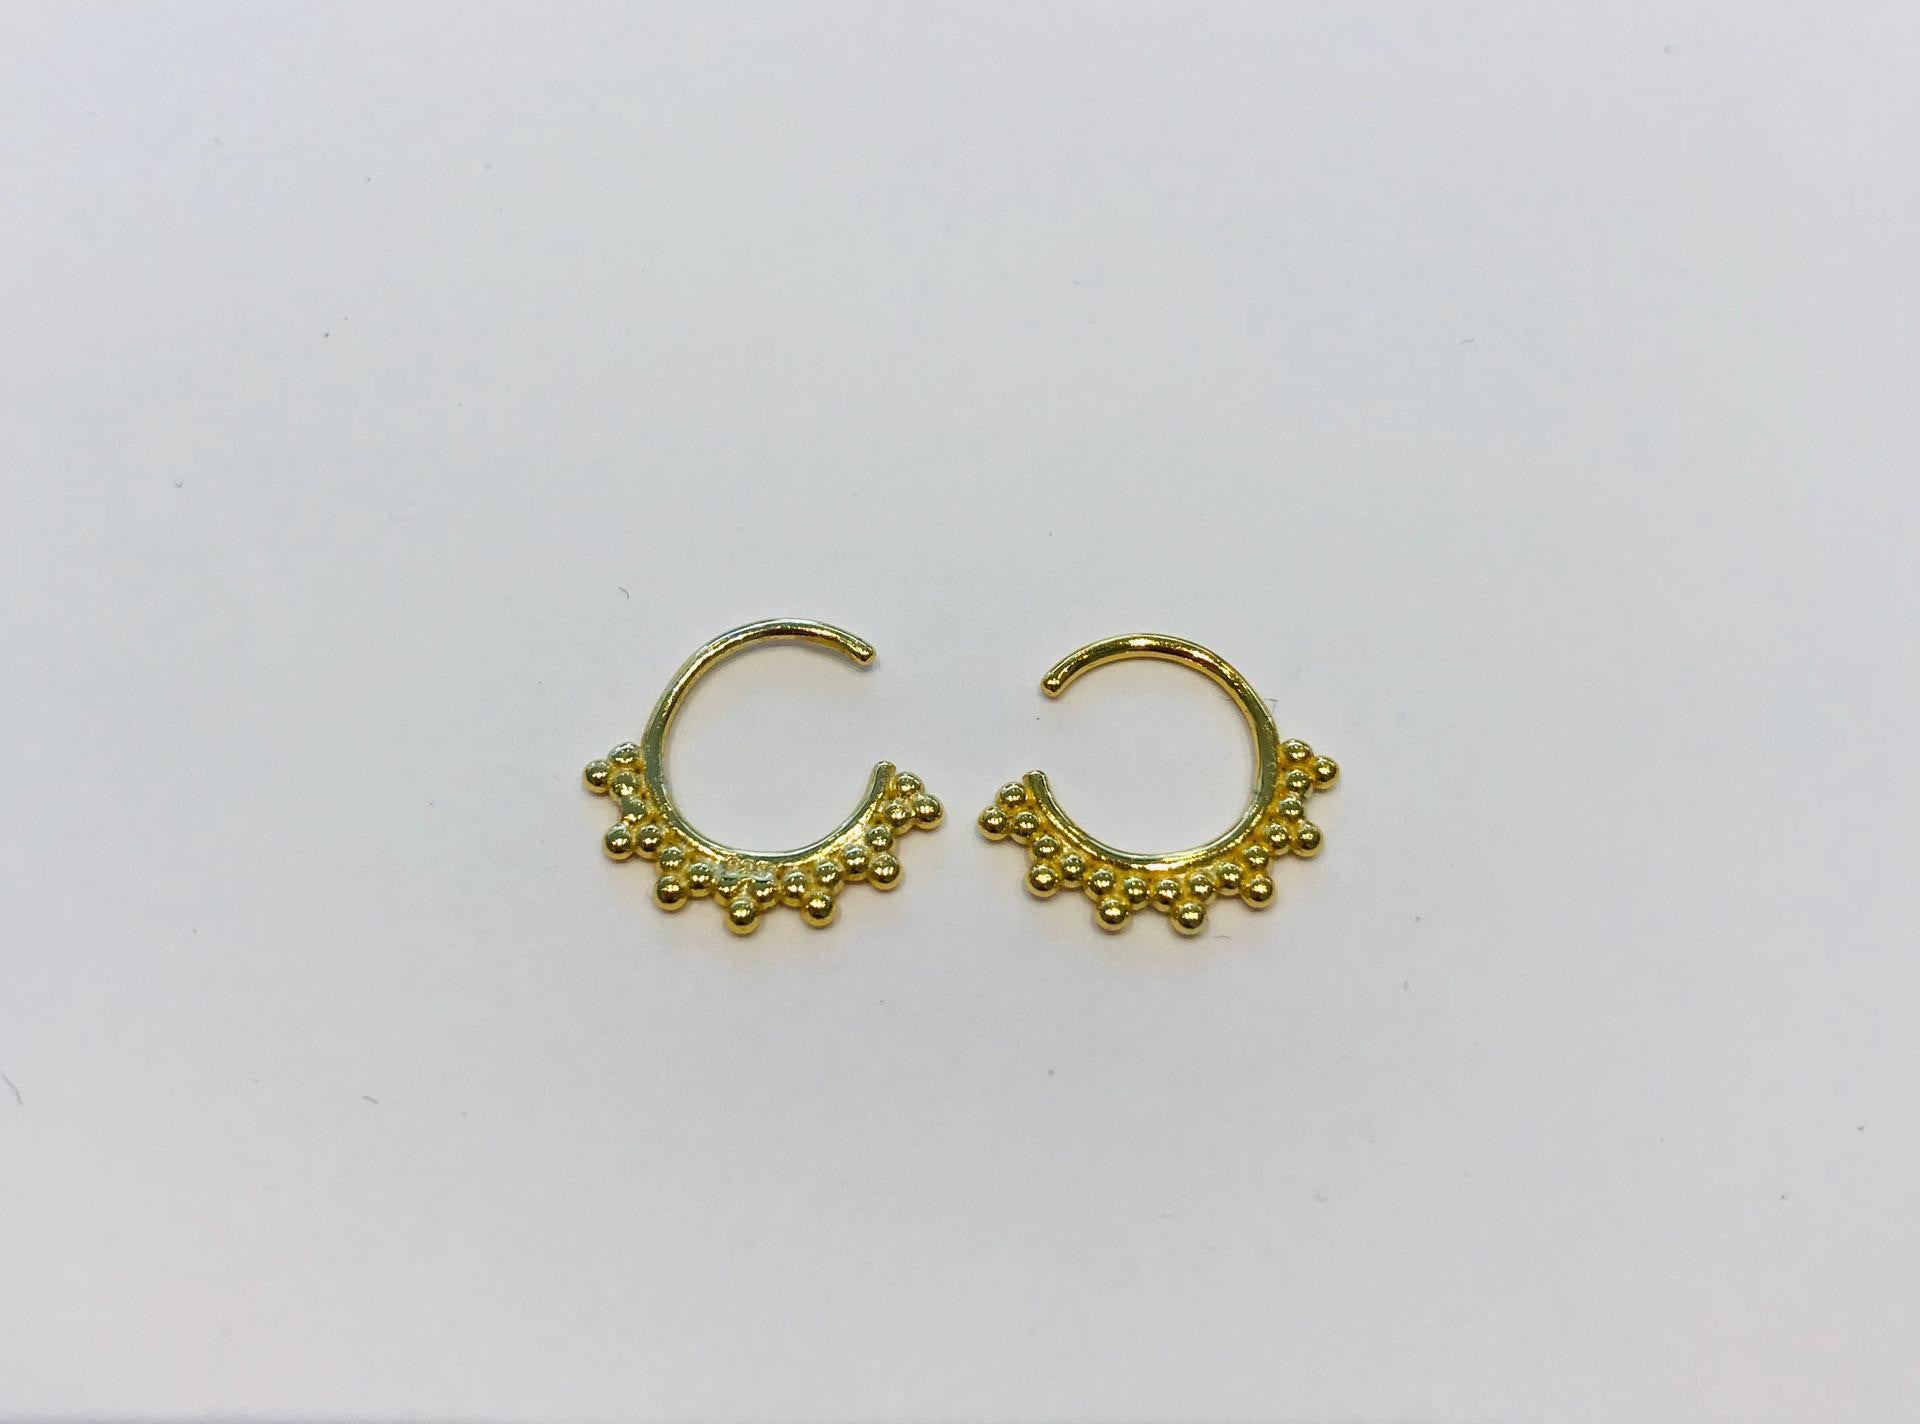 Small gold plated ring earrings by SAM&CEL which can be worn in multiple ways.